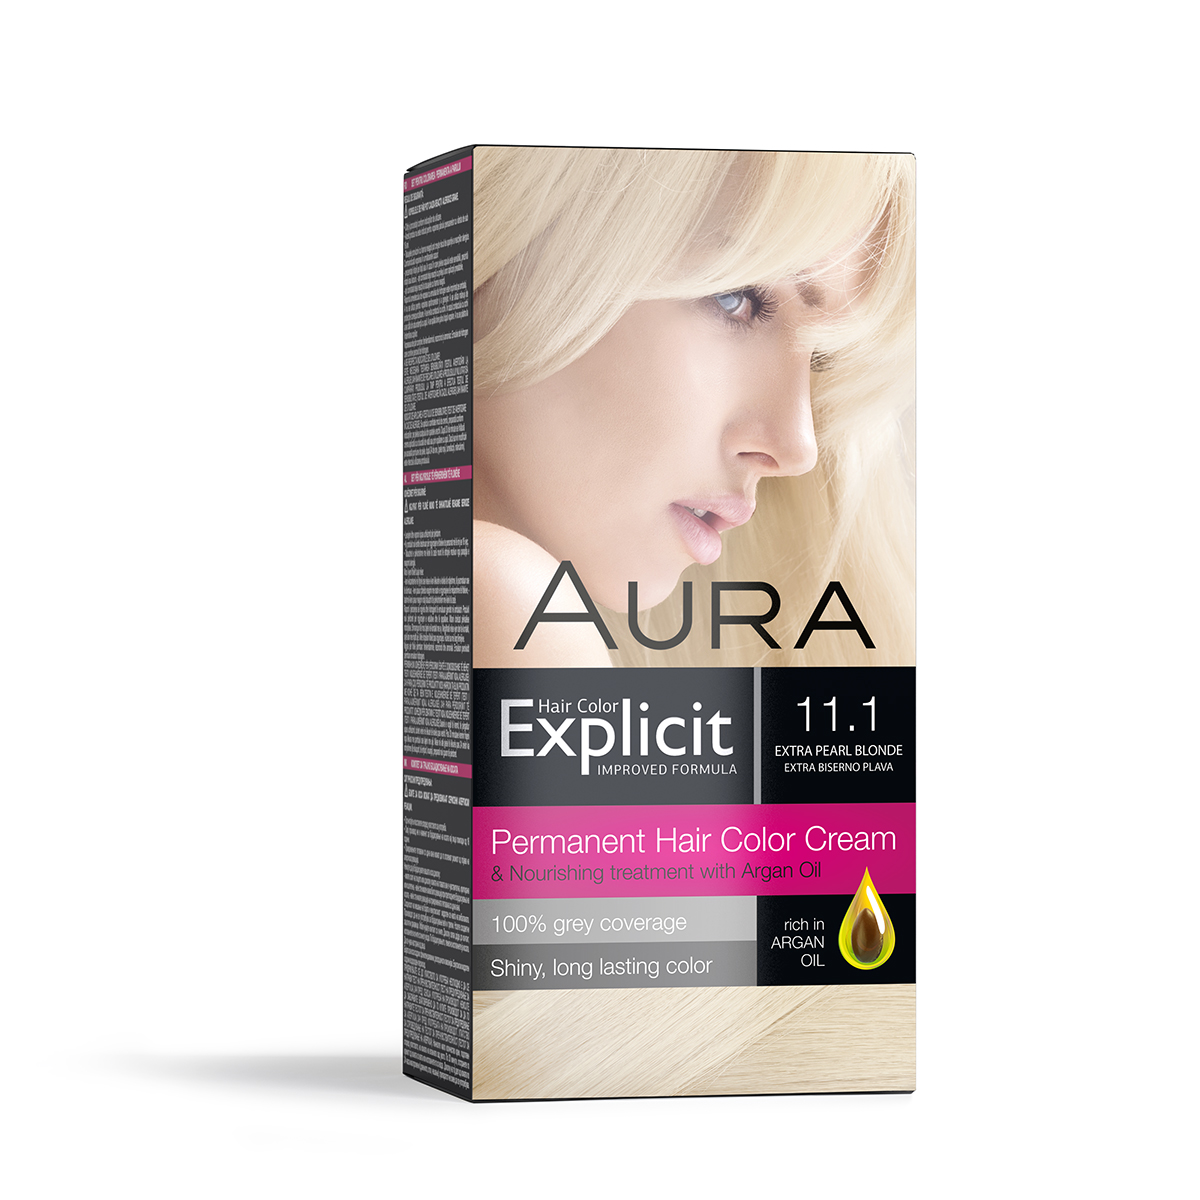 Explicit hair colour 11.1 Extra pearl blonde